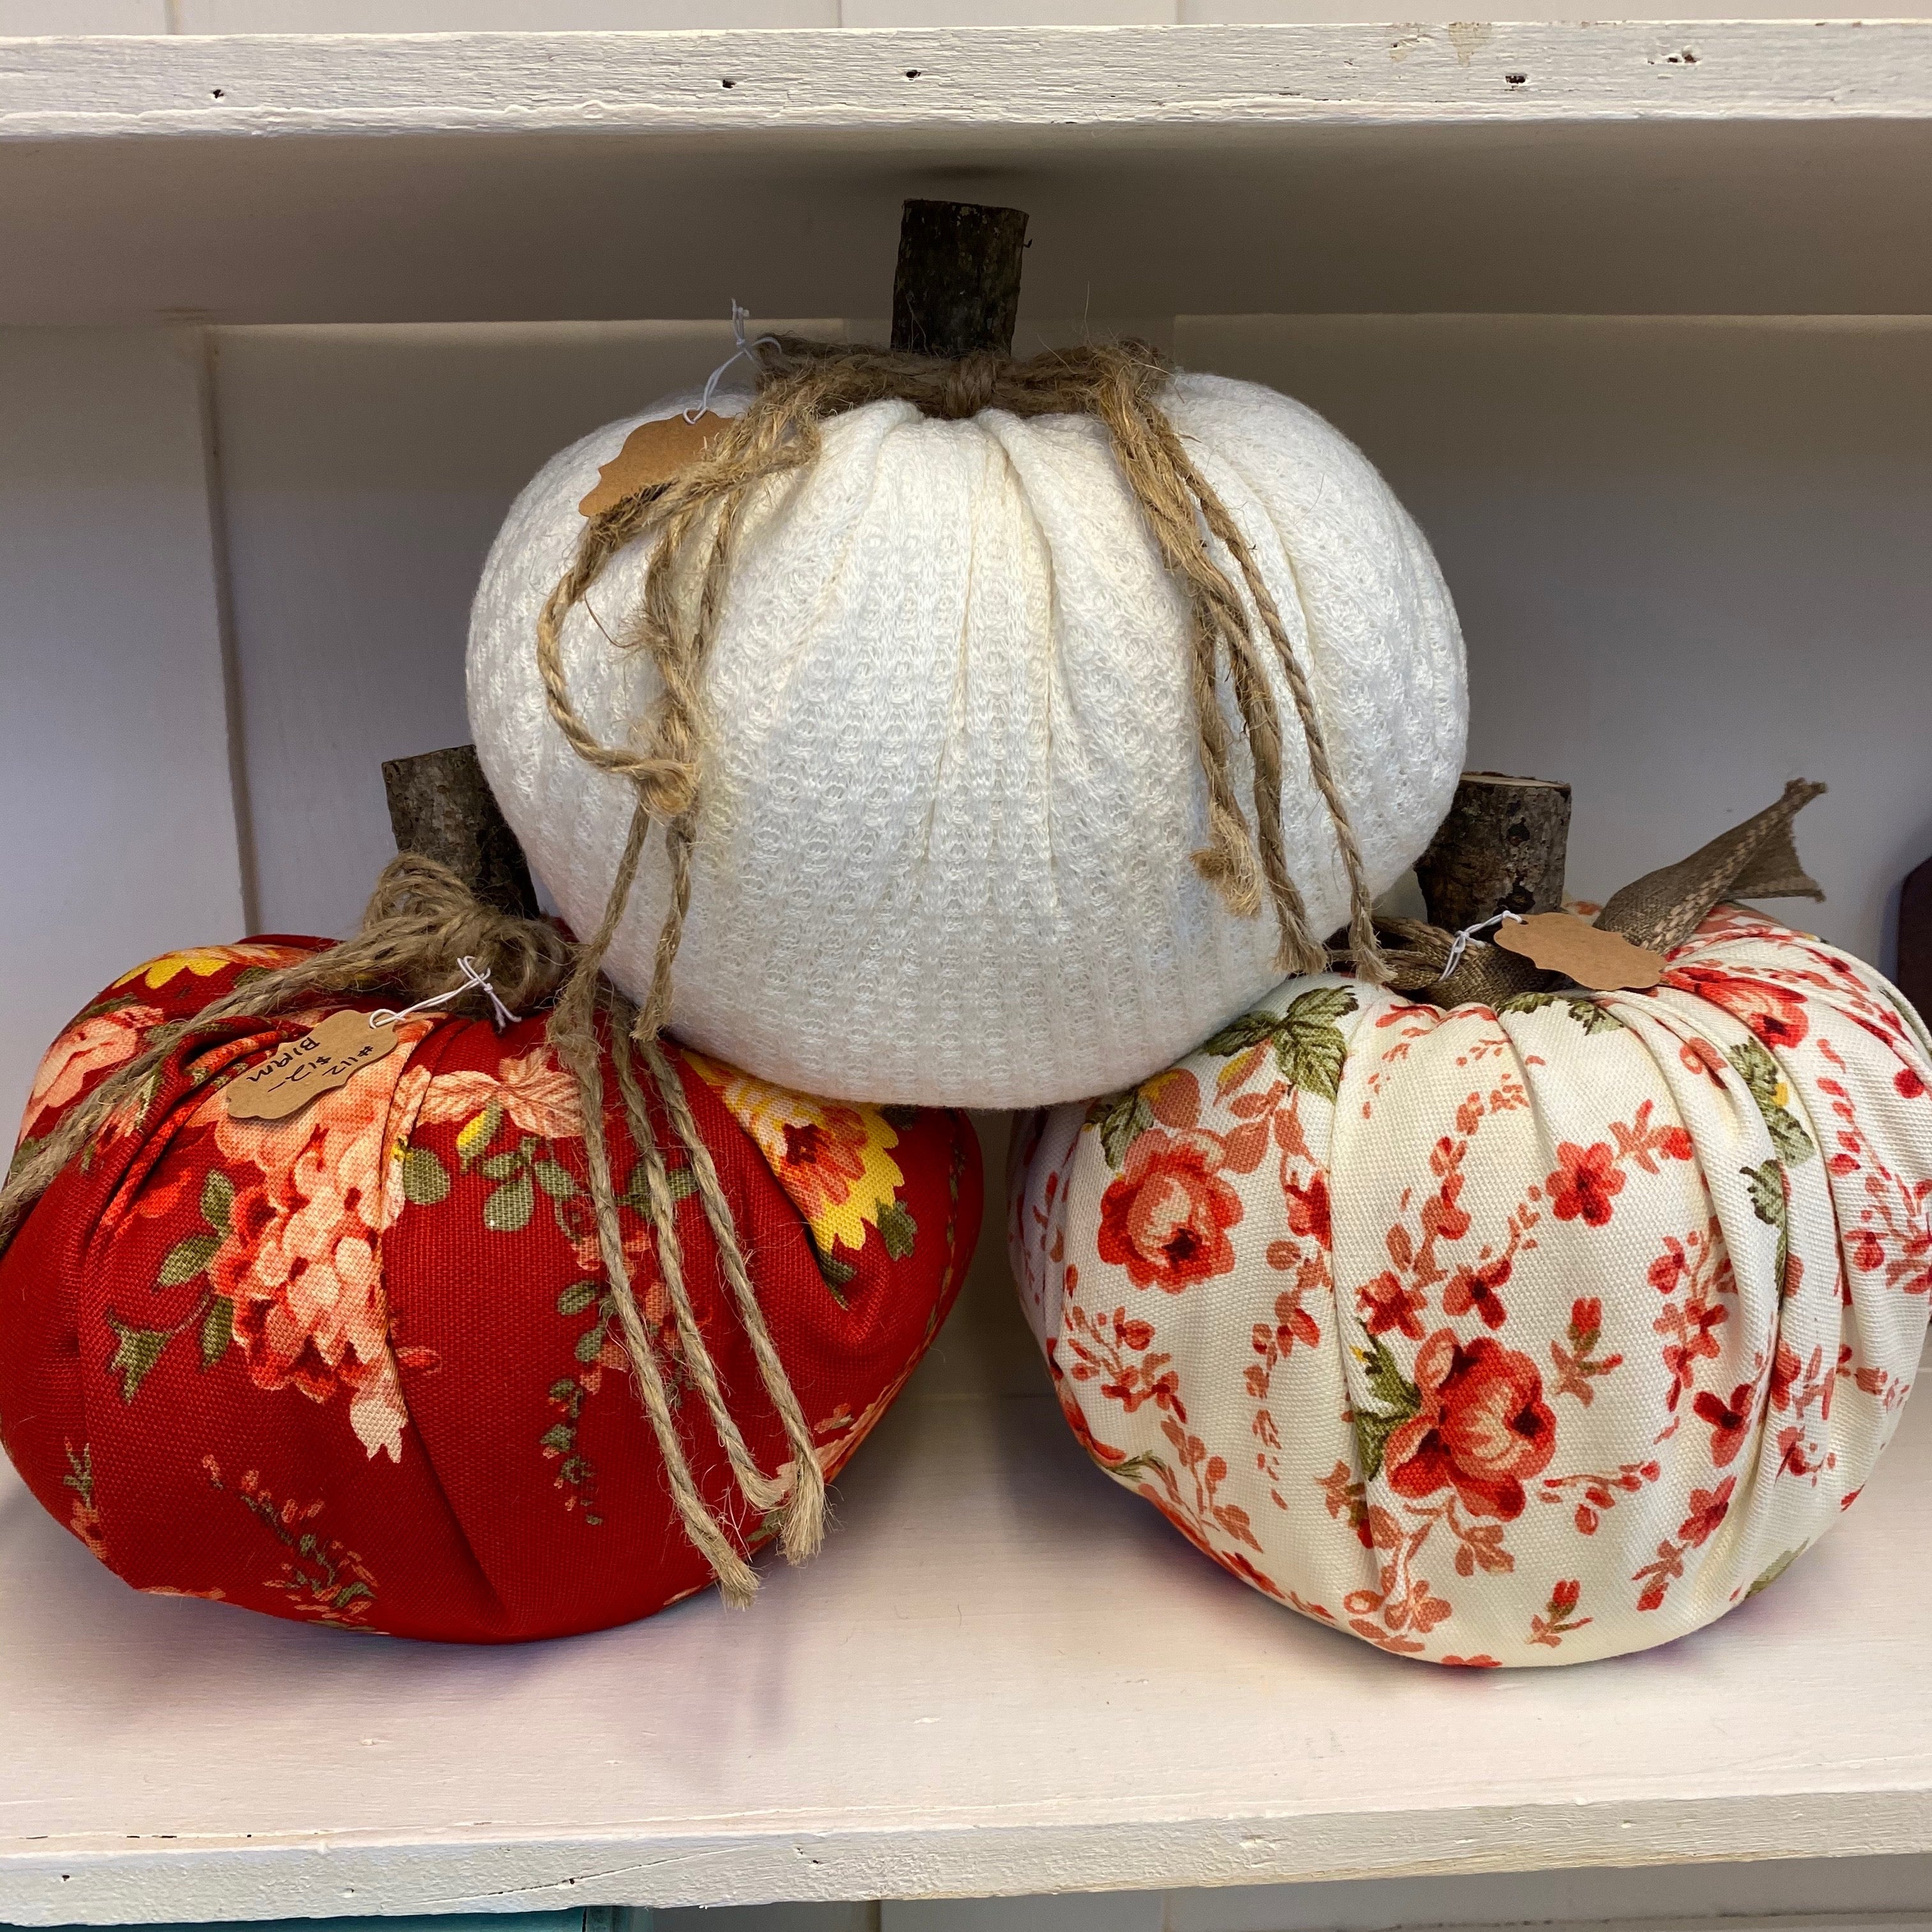 Make and Take Pumpkin Class Sunday October 11th 10AM